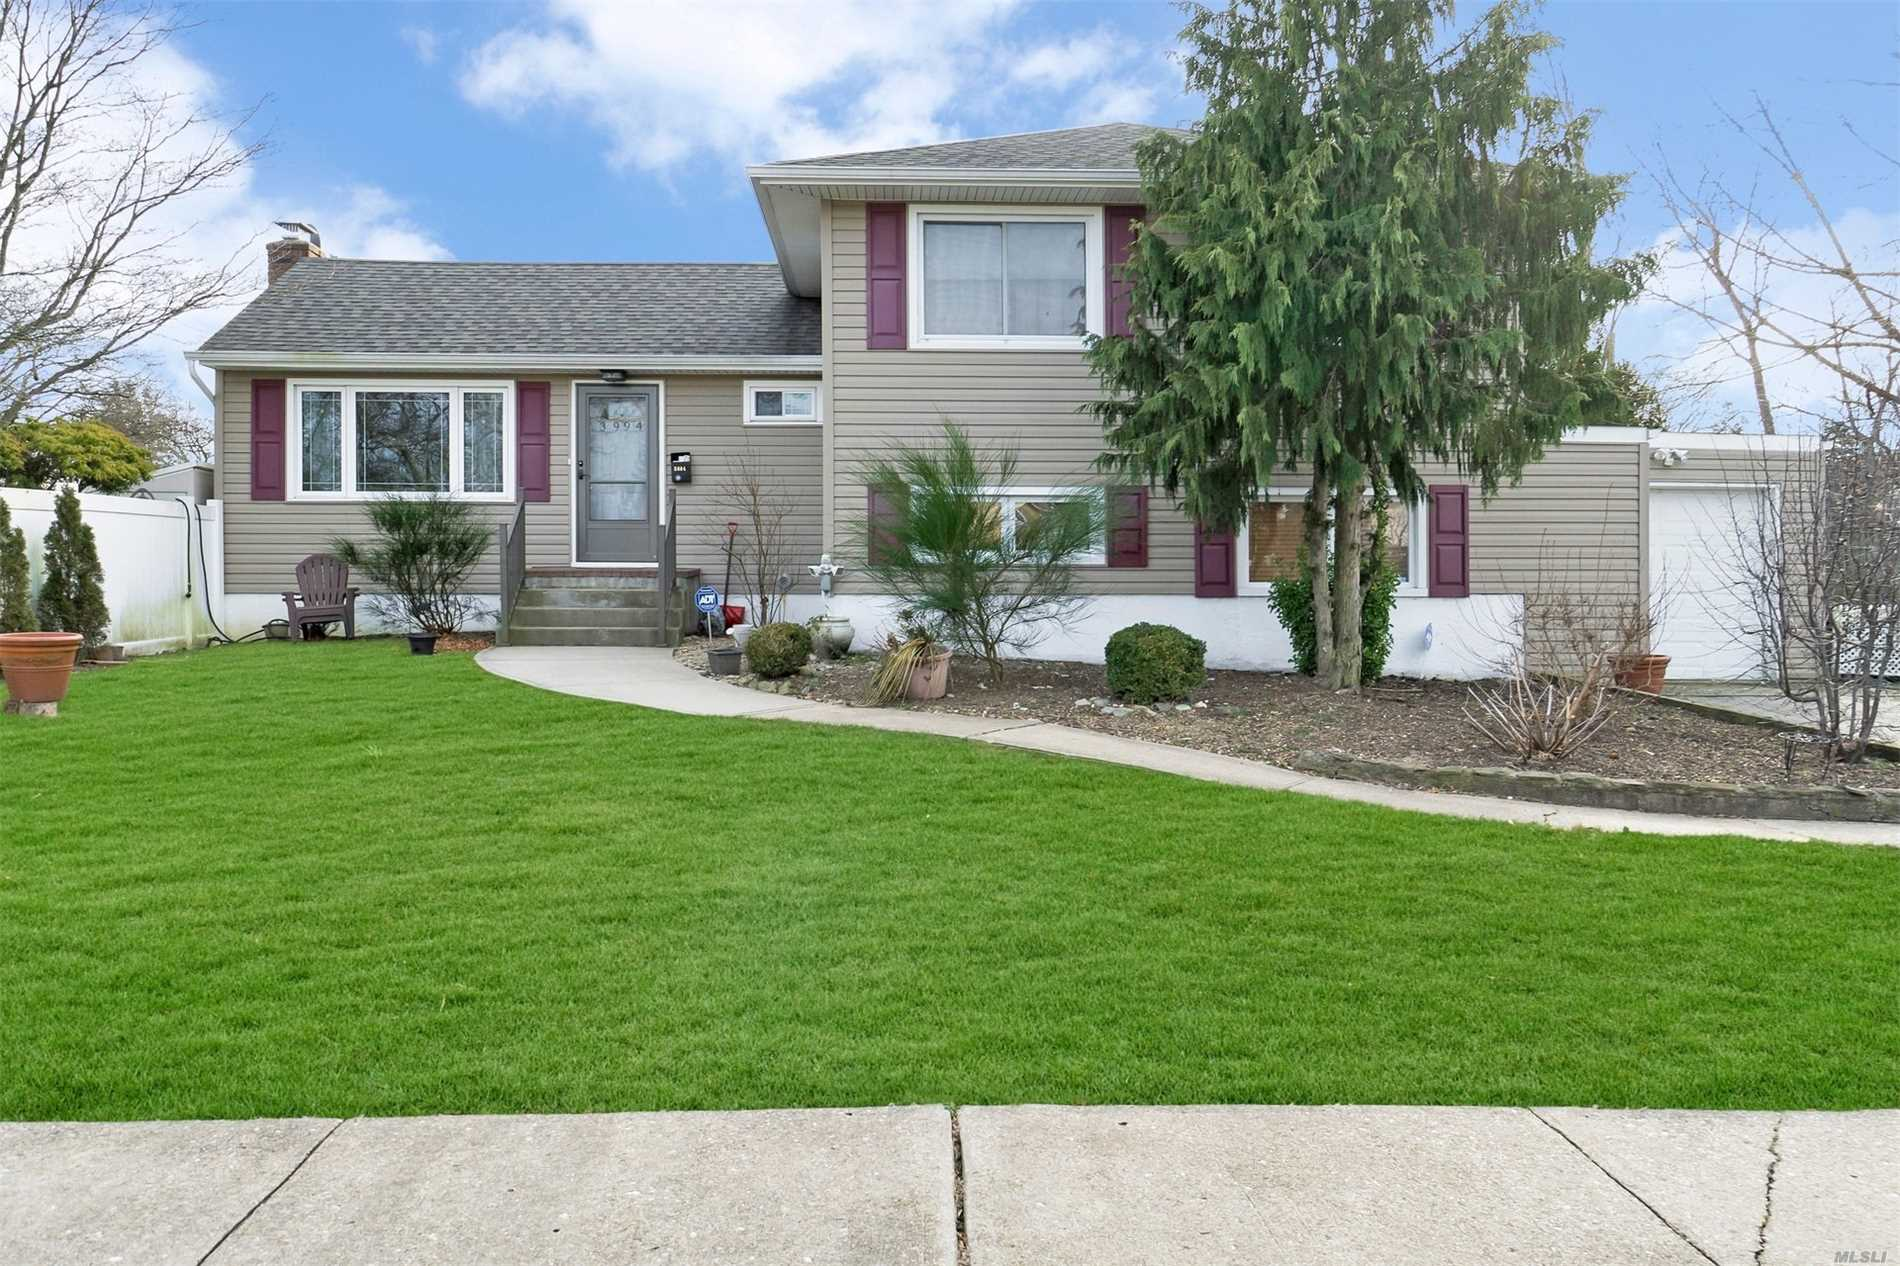 Beautiful Expanded Split In Calvert Manor. Possible Mother/Daughter With Proper Permits. With Open Concept Kitchen, Wood Cabinets And Stainless Appliances, Living Room With Vaulted Ceiling, Anderson Replacement Windows, Central Air, Newer Gas Burner, Tankless Hwh, And Award Winning Levittown Schools.